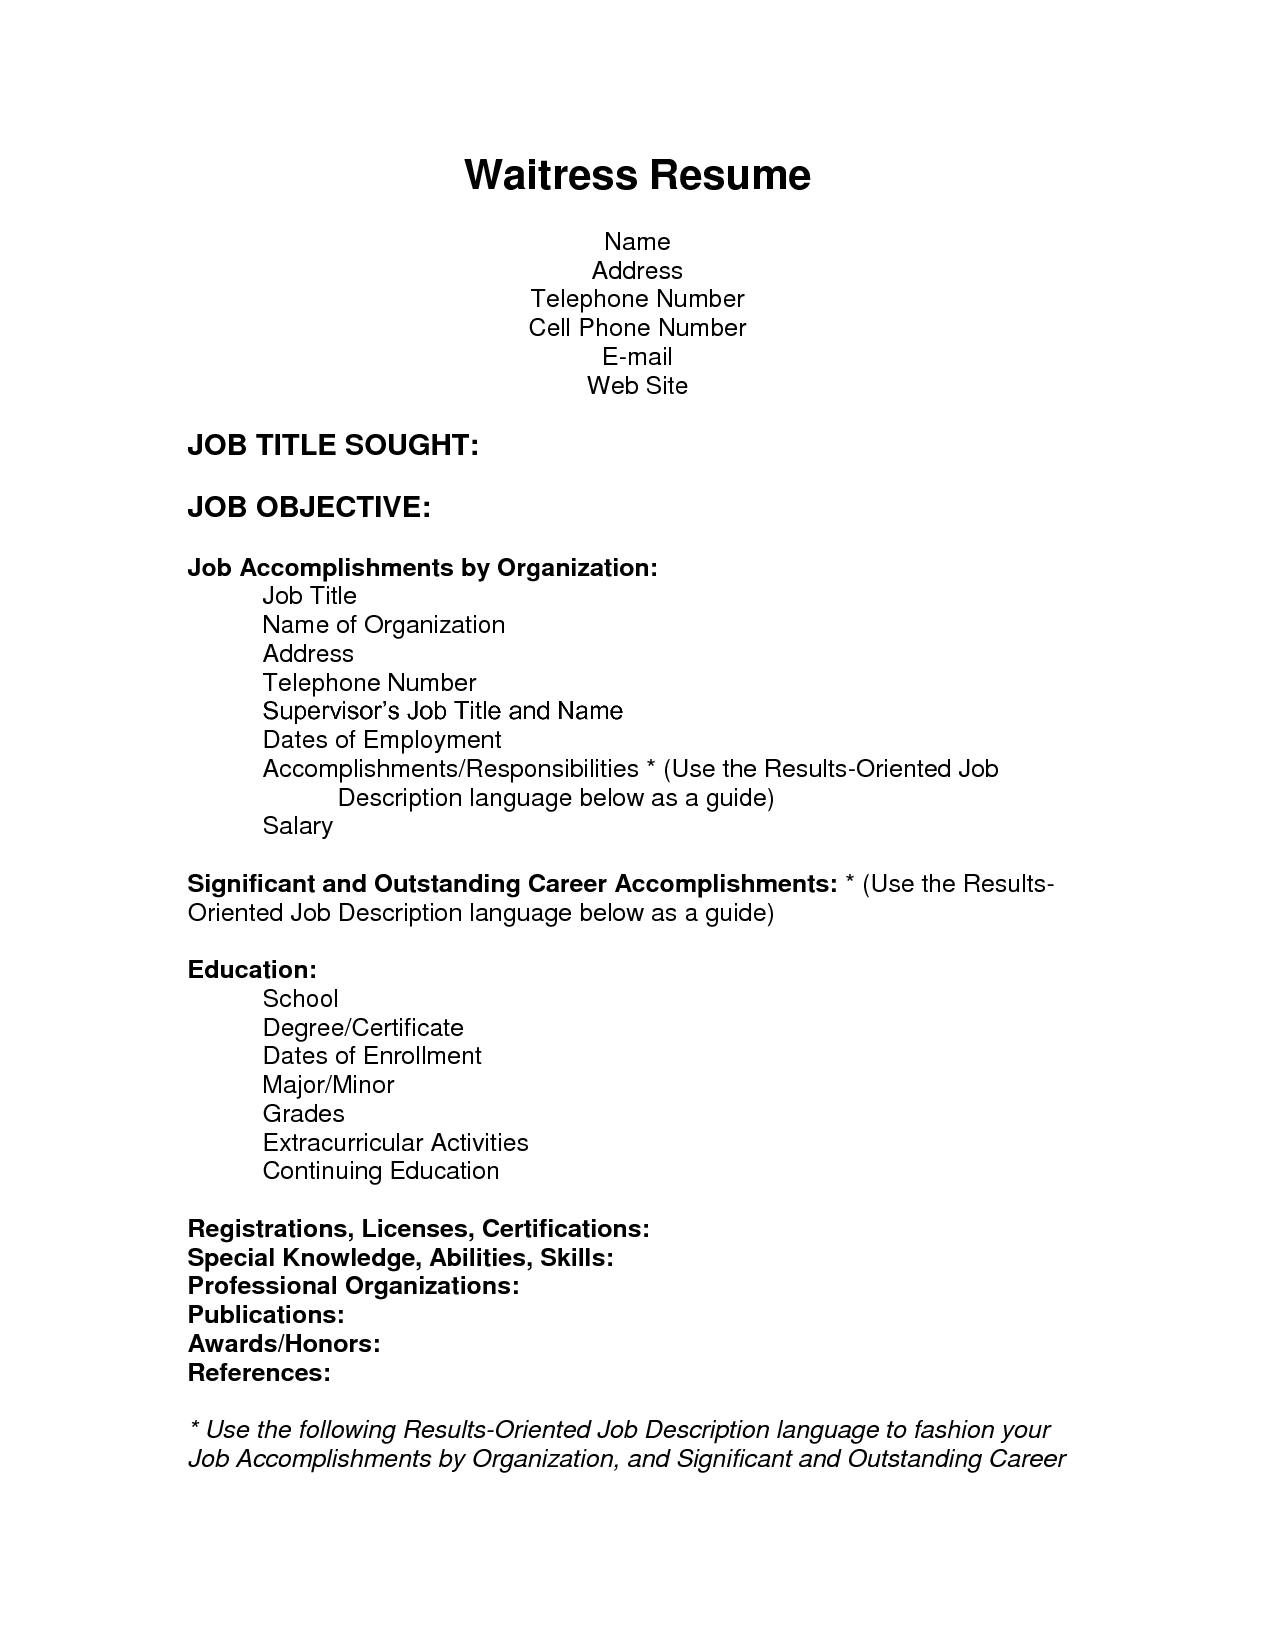 sample resume for waitress 3. 8 sample resume waitress job ...